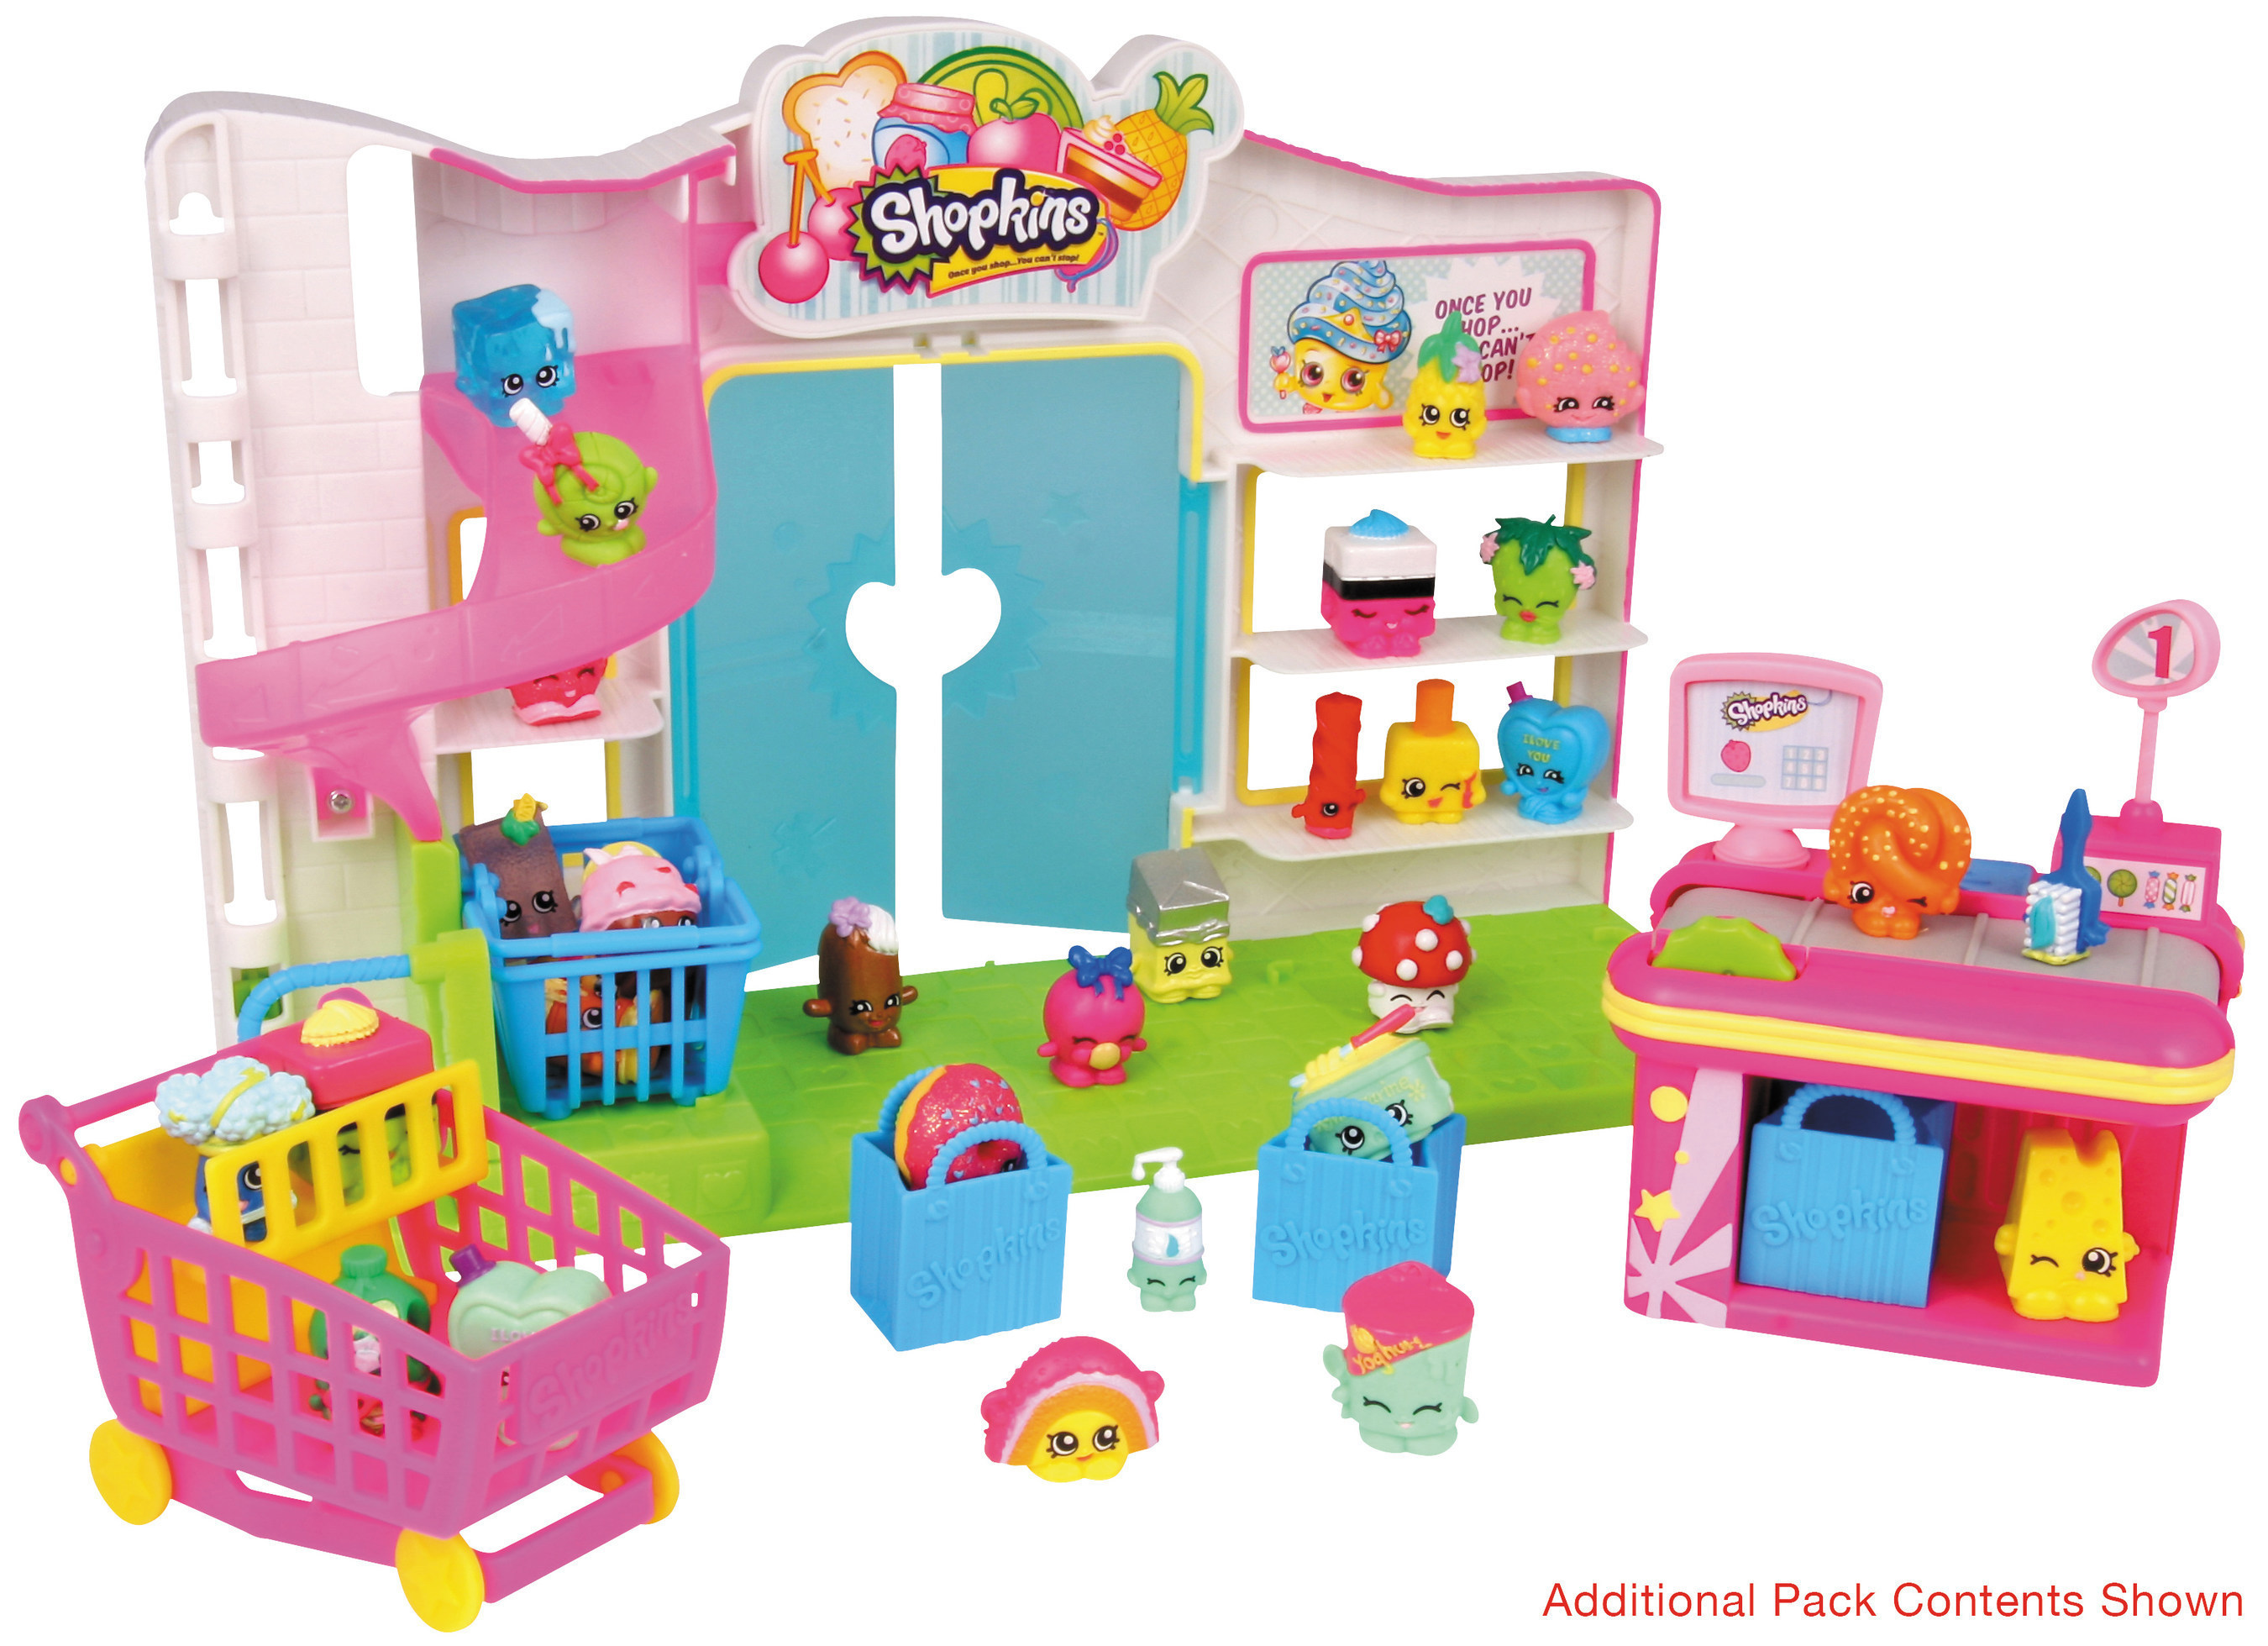 Shopkins Small Mart is named a 2015 Toy of the Year finalist by the Toy Industry Association. To meet high demand, Moose Toys is flying in additional stock for the holidays.